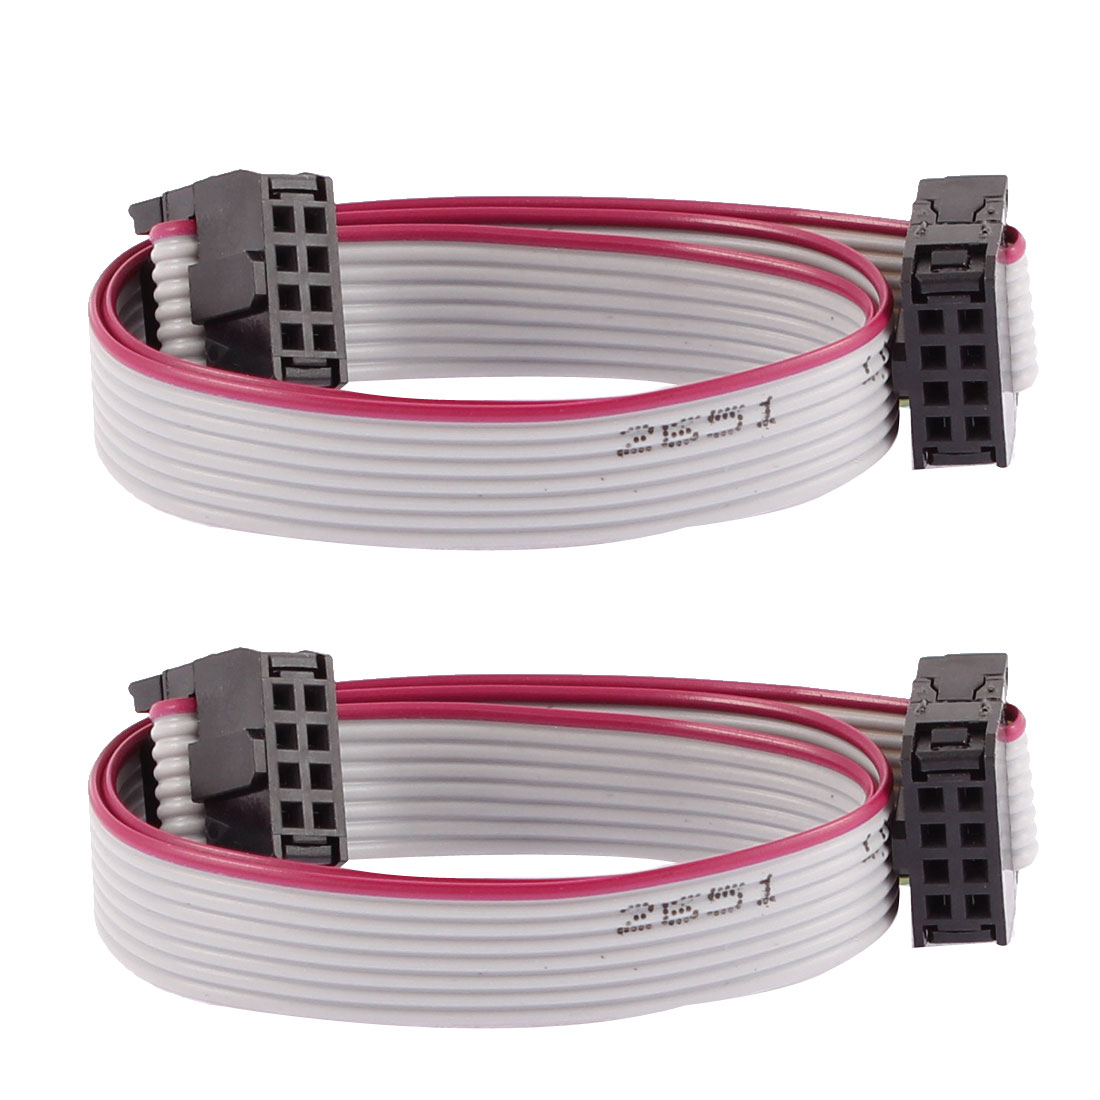 2.54mm Pitch 8 Pins 8 Wires F/F IDC Connector Flat Ribbon Cable 30cm Length 2pcs